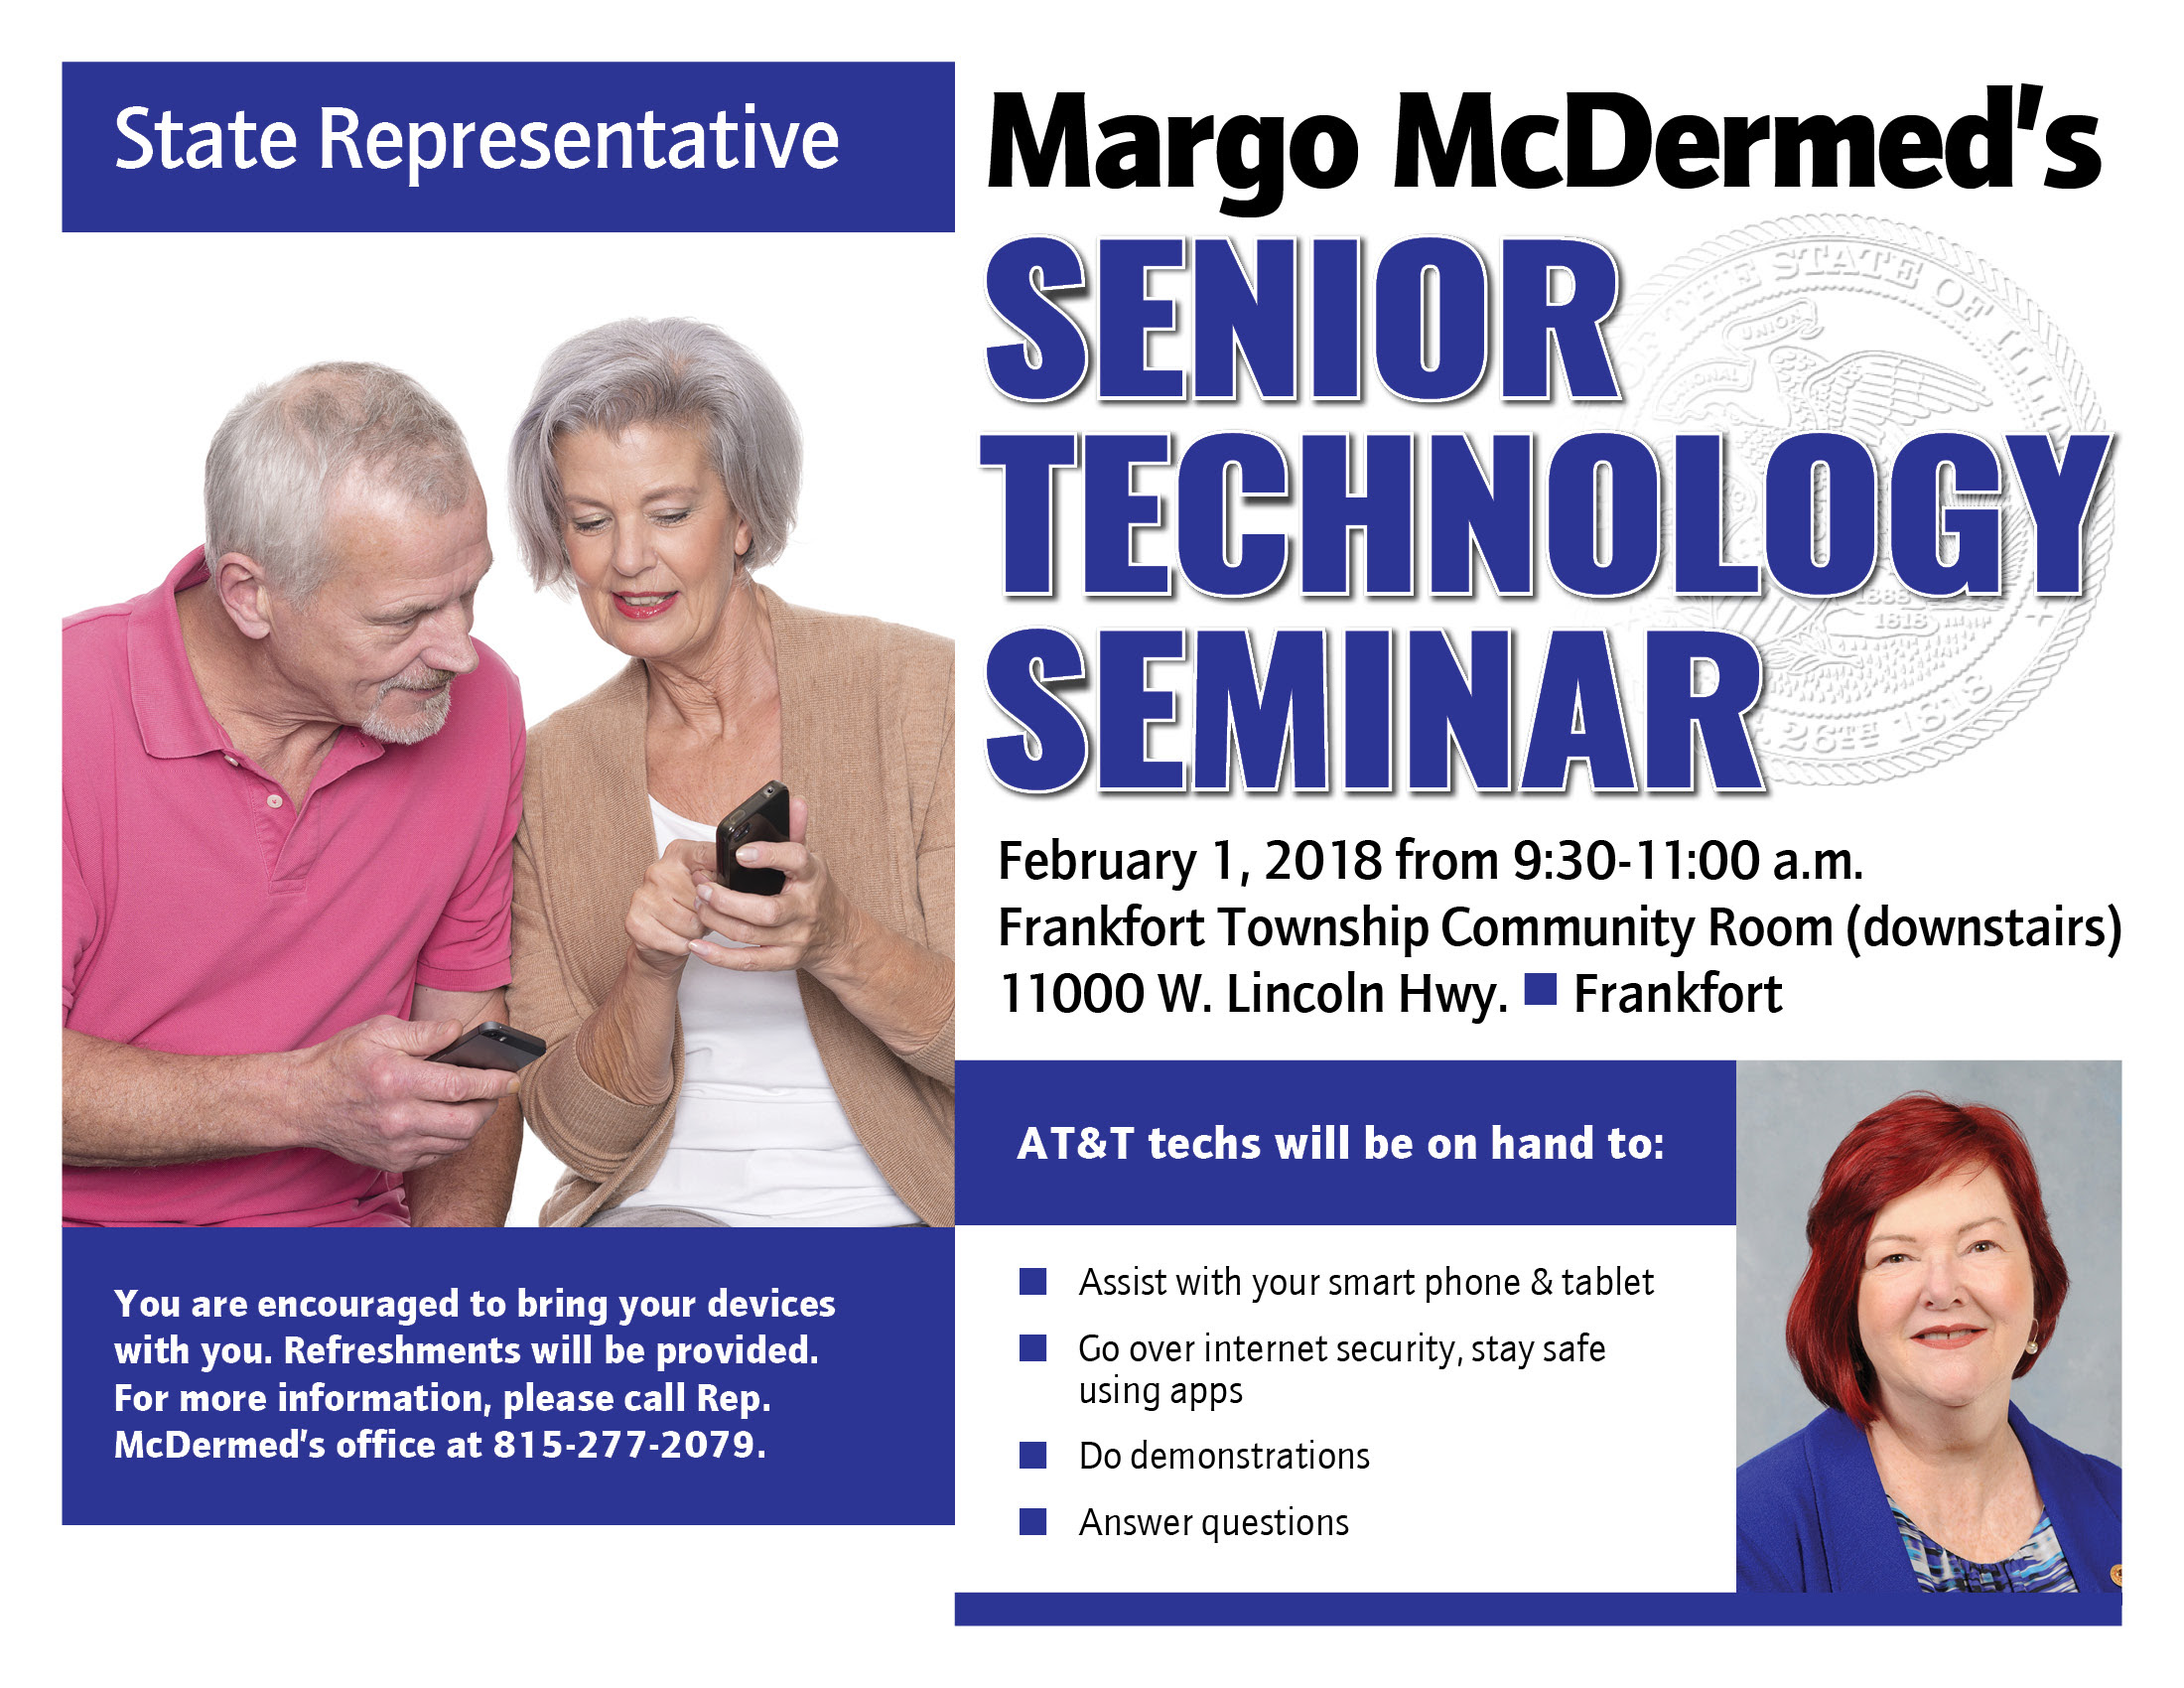 mcdermed_senior_tech_fair_flyer_020118_r2.jpg